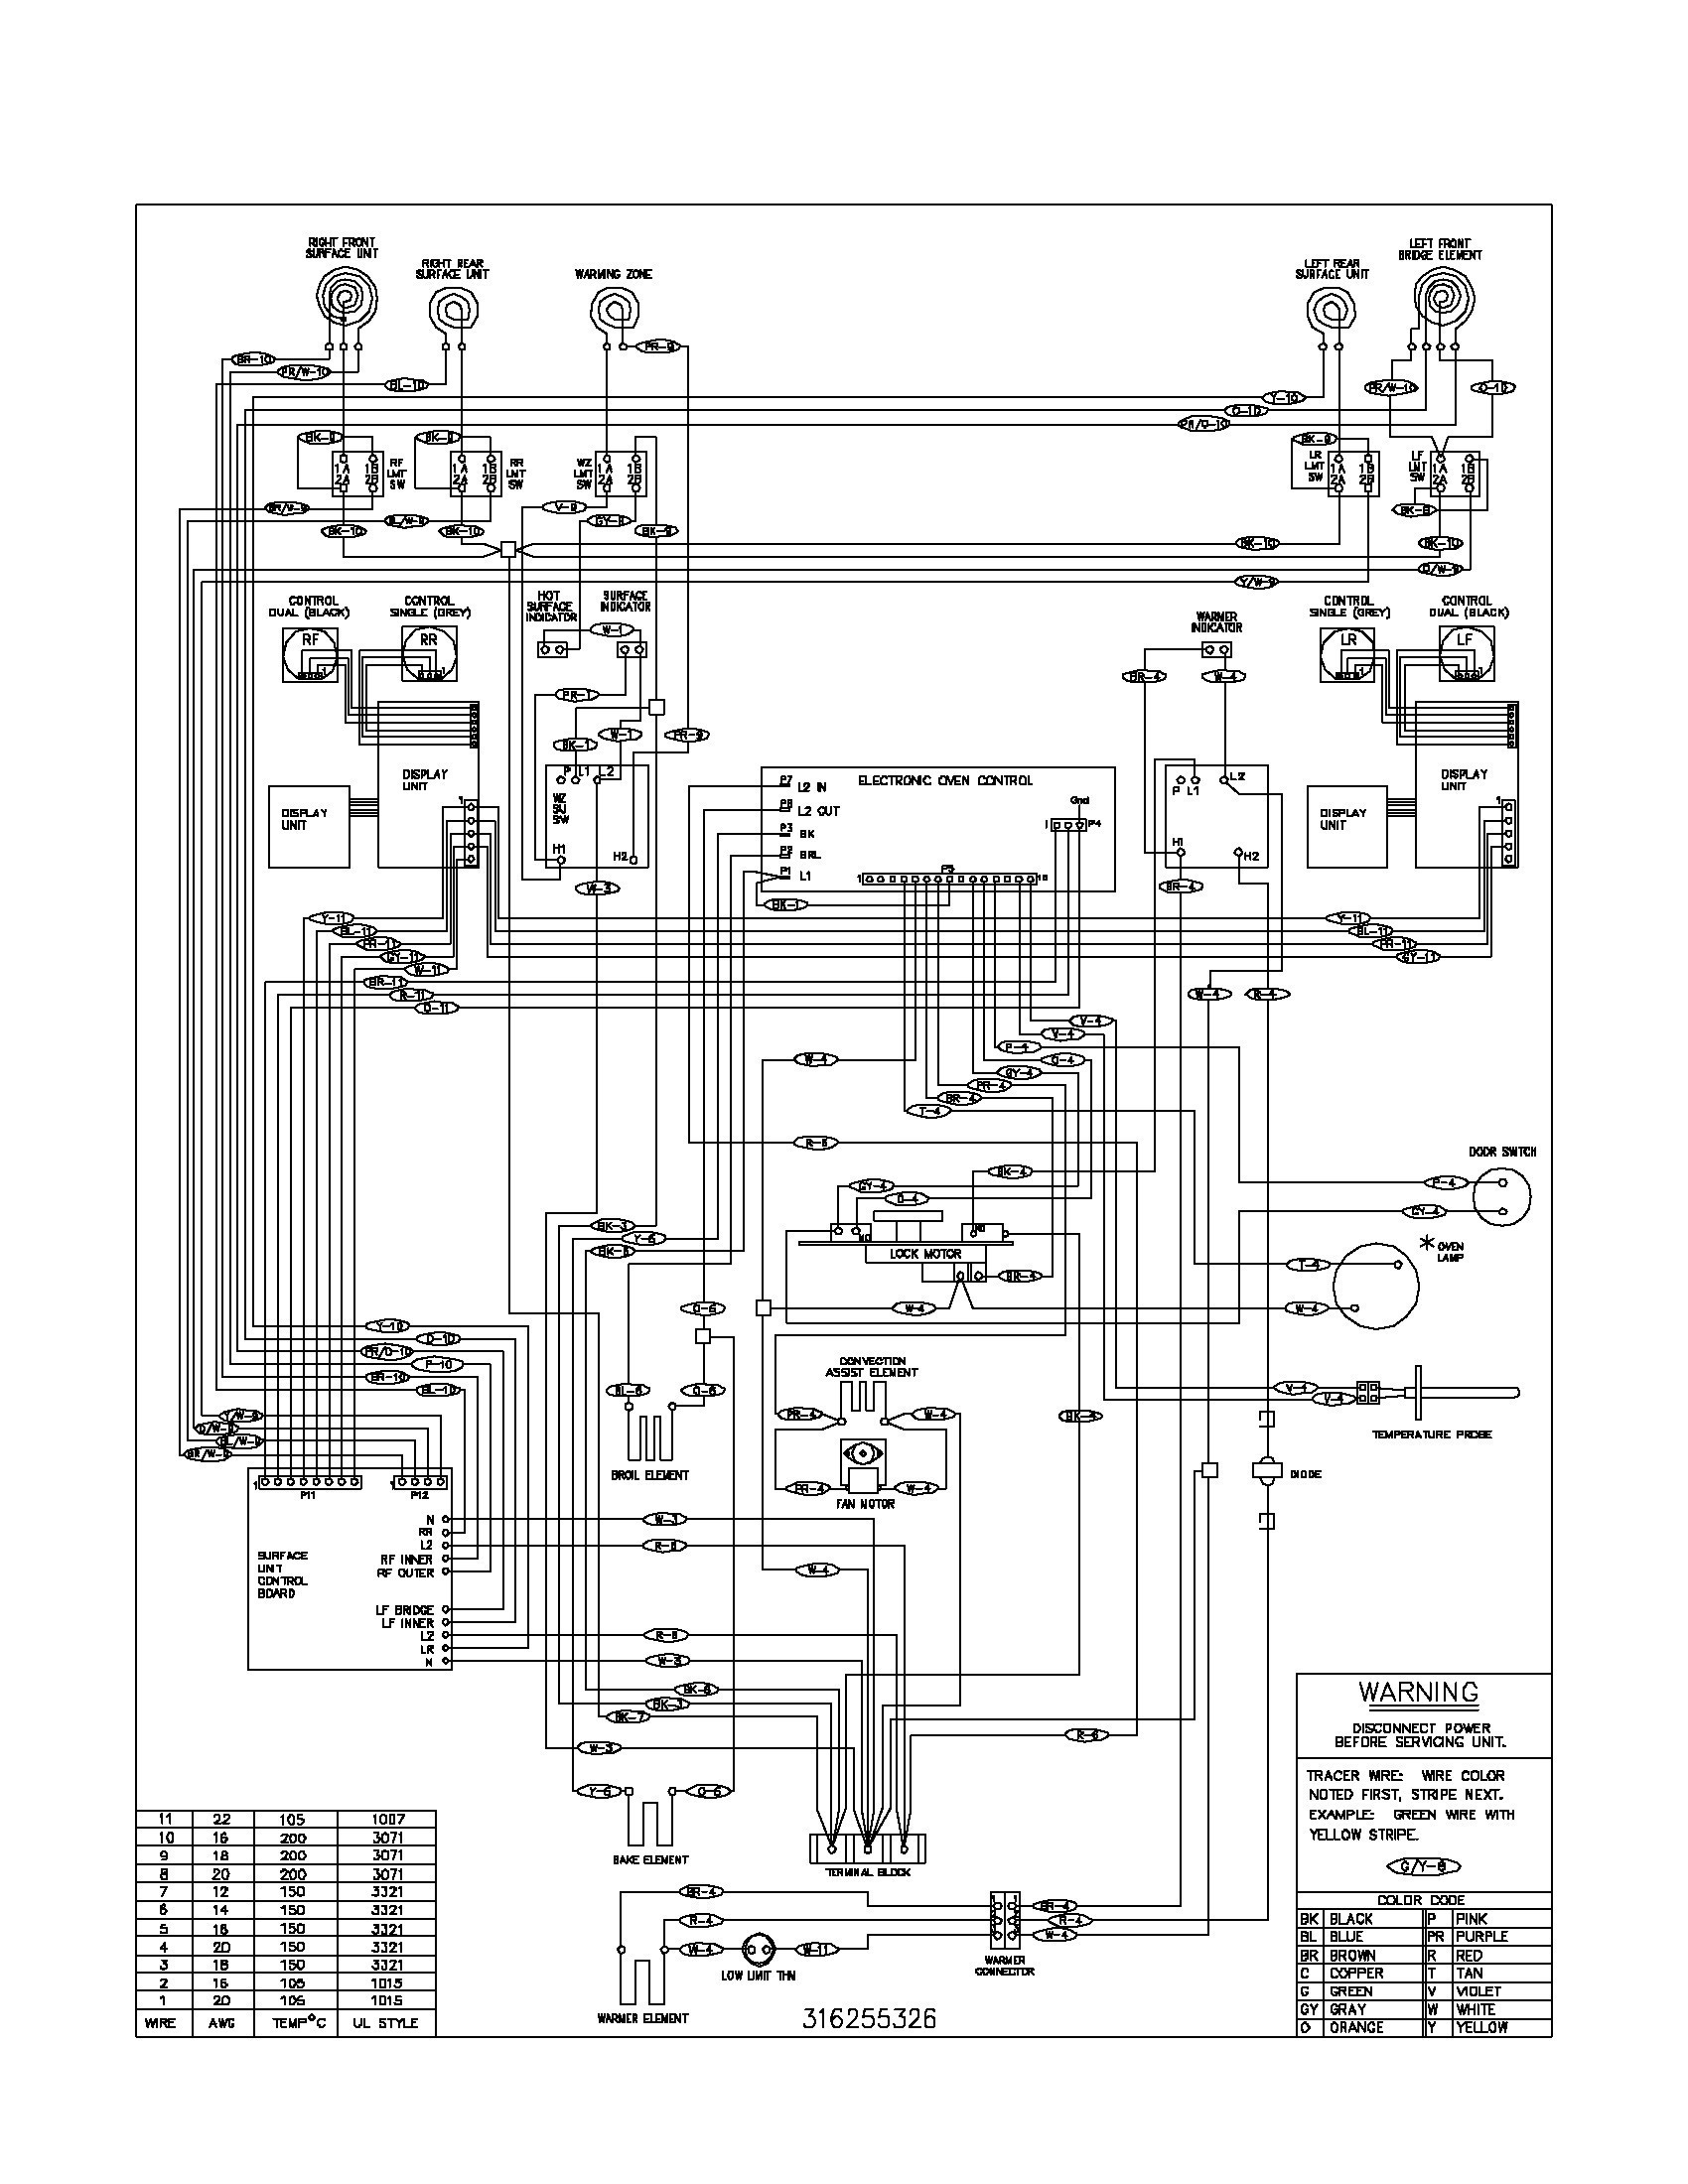 hight resolution of best of electric stove wiring diagram wiring stove and oven wiring diagram electric stove wiring diagram infinite switch